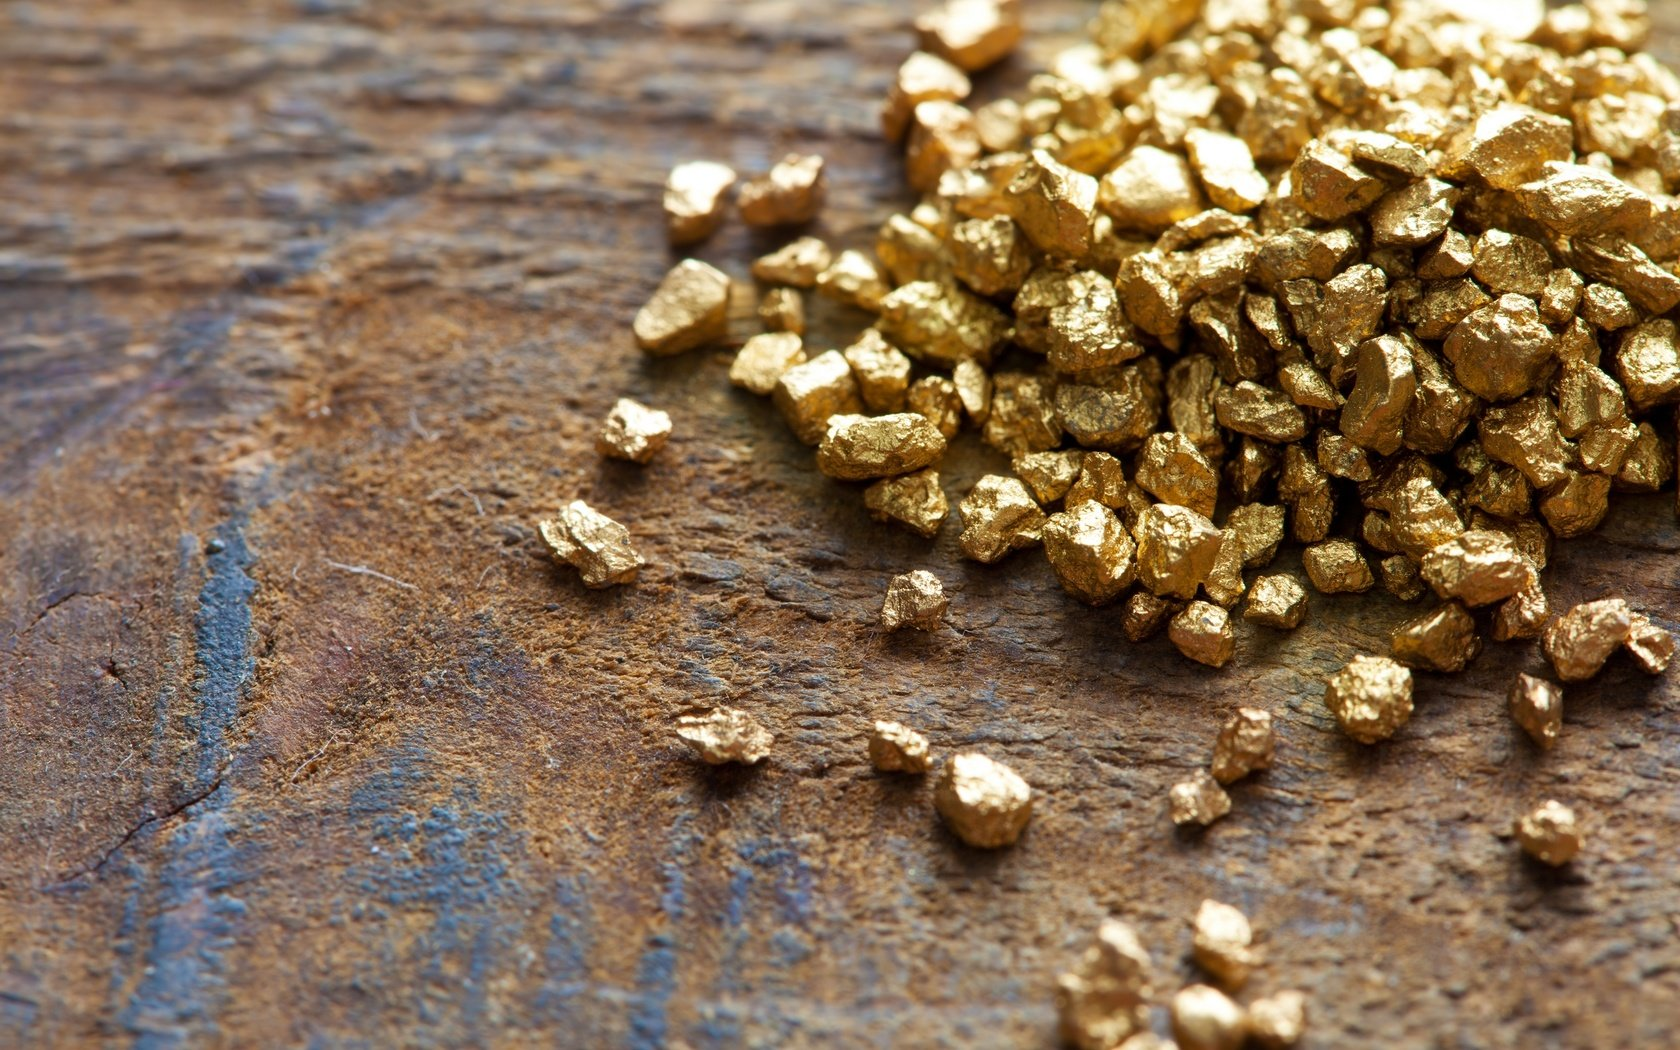 five force model for gold mining industry